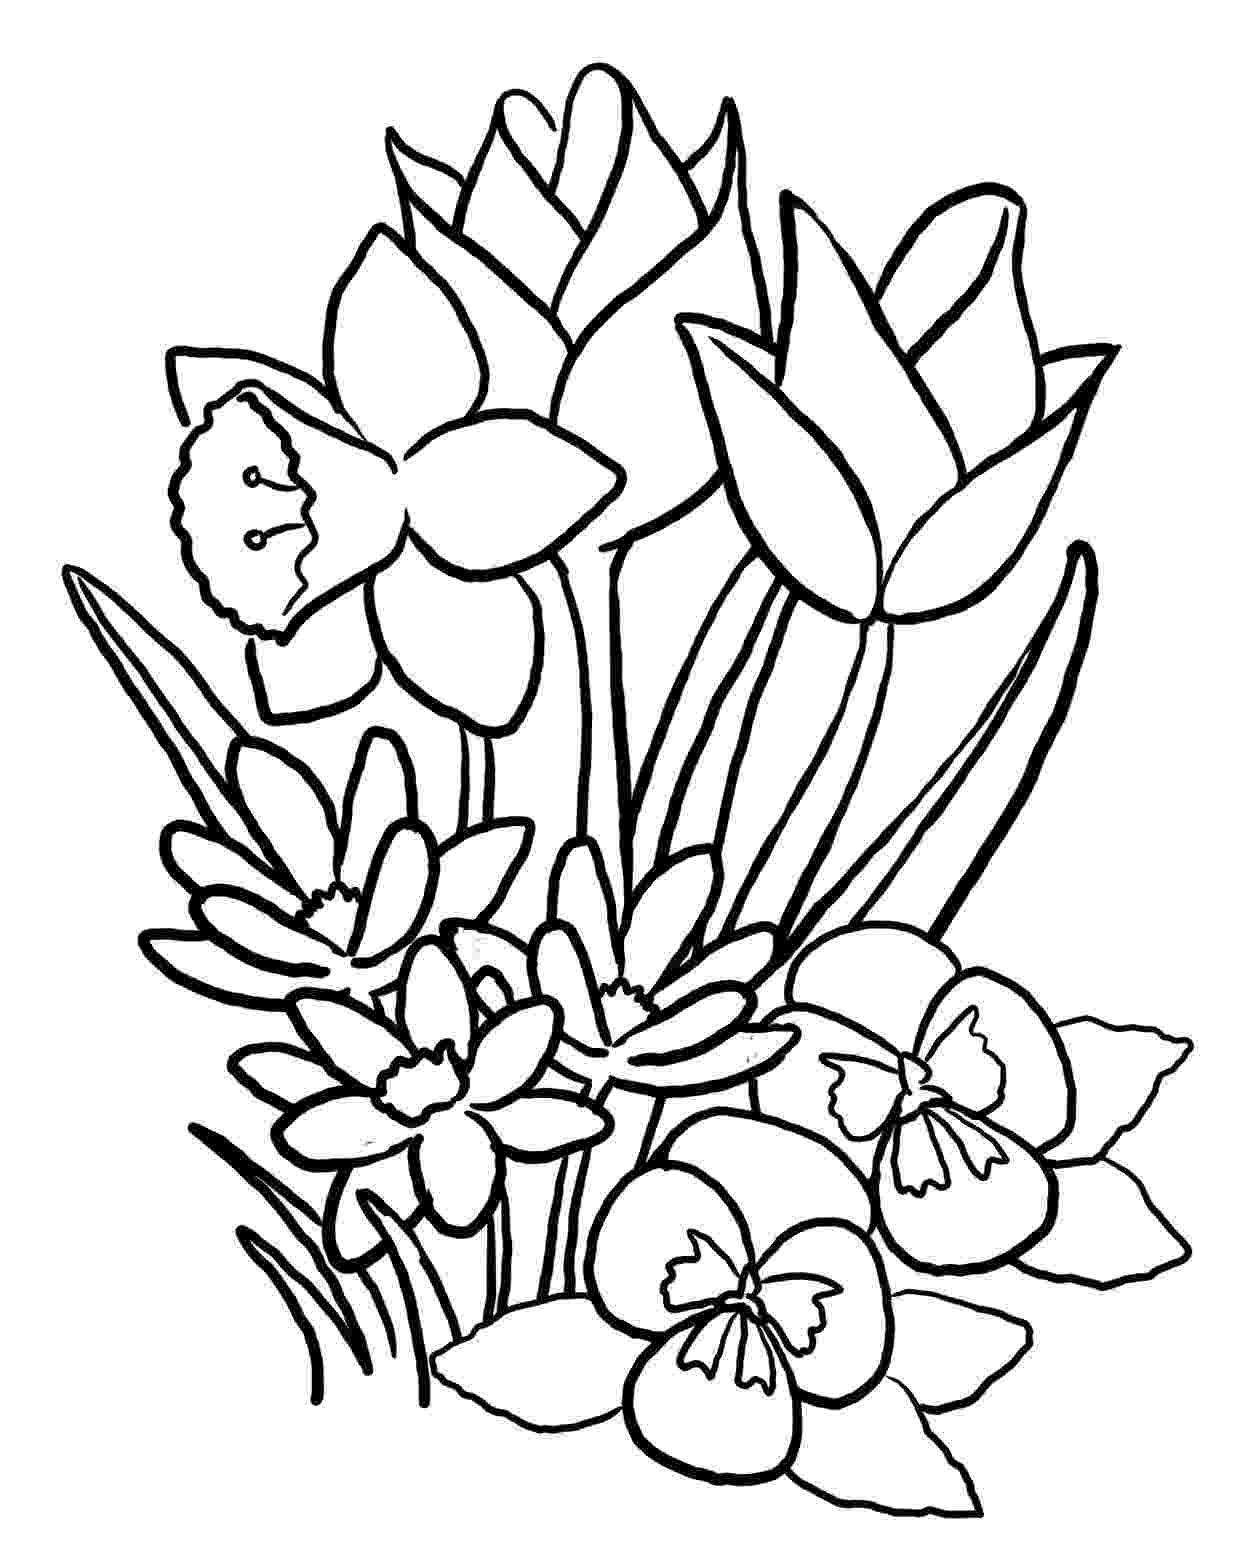 free flower pictures to print and color free printable flower coloring pages for kids best flower and print pictures free color to